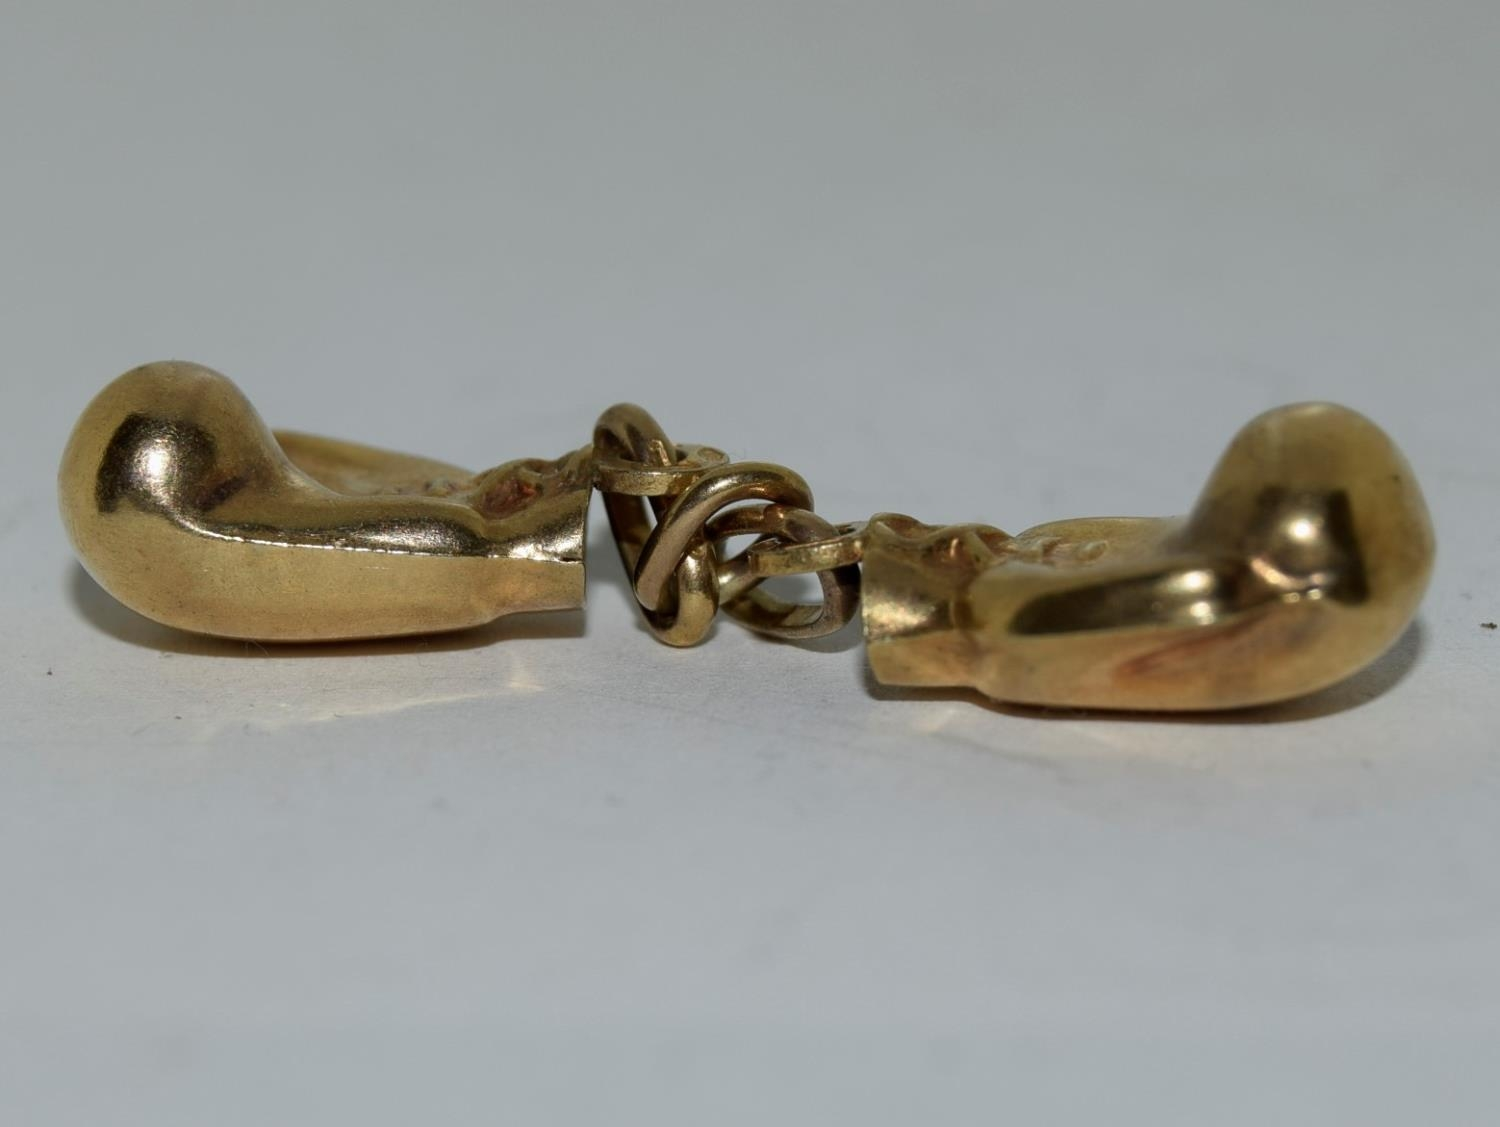 9ct gold charm a pair of boxing gloves - Image 6 of 6